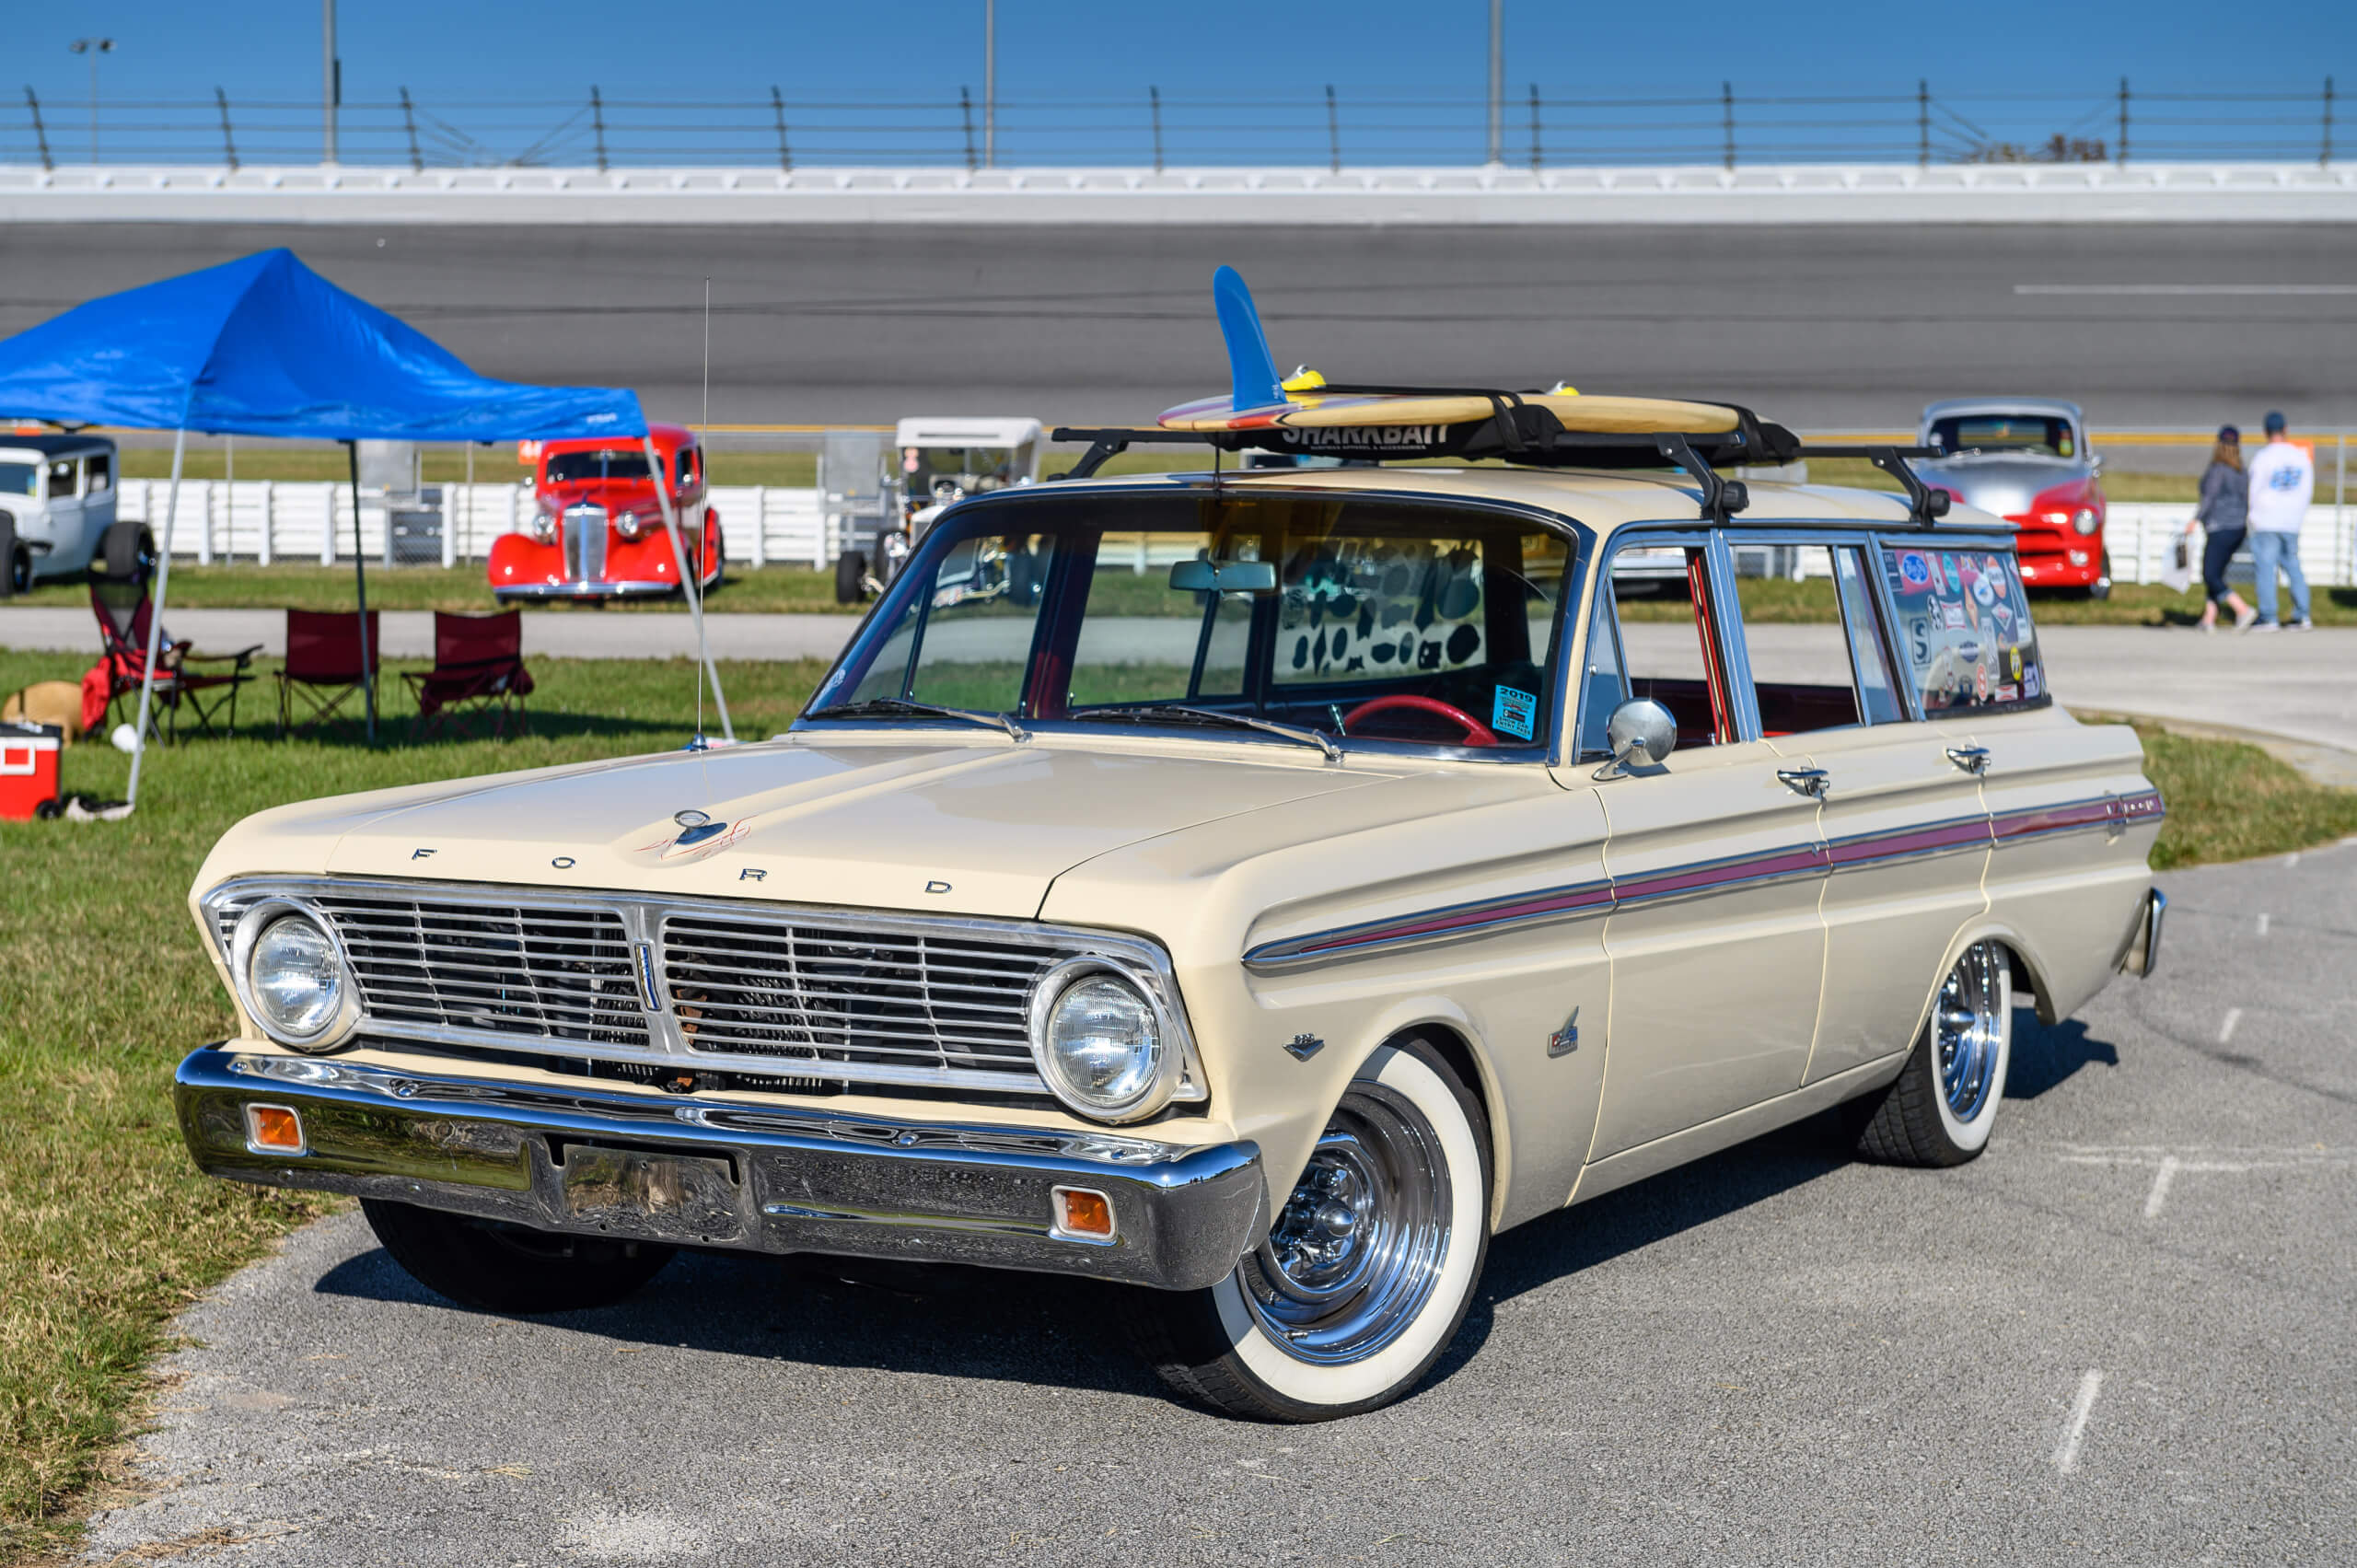 This 1965 Ford Falcon station wagon is a family beach hauler.